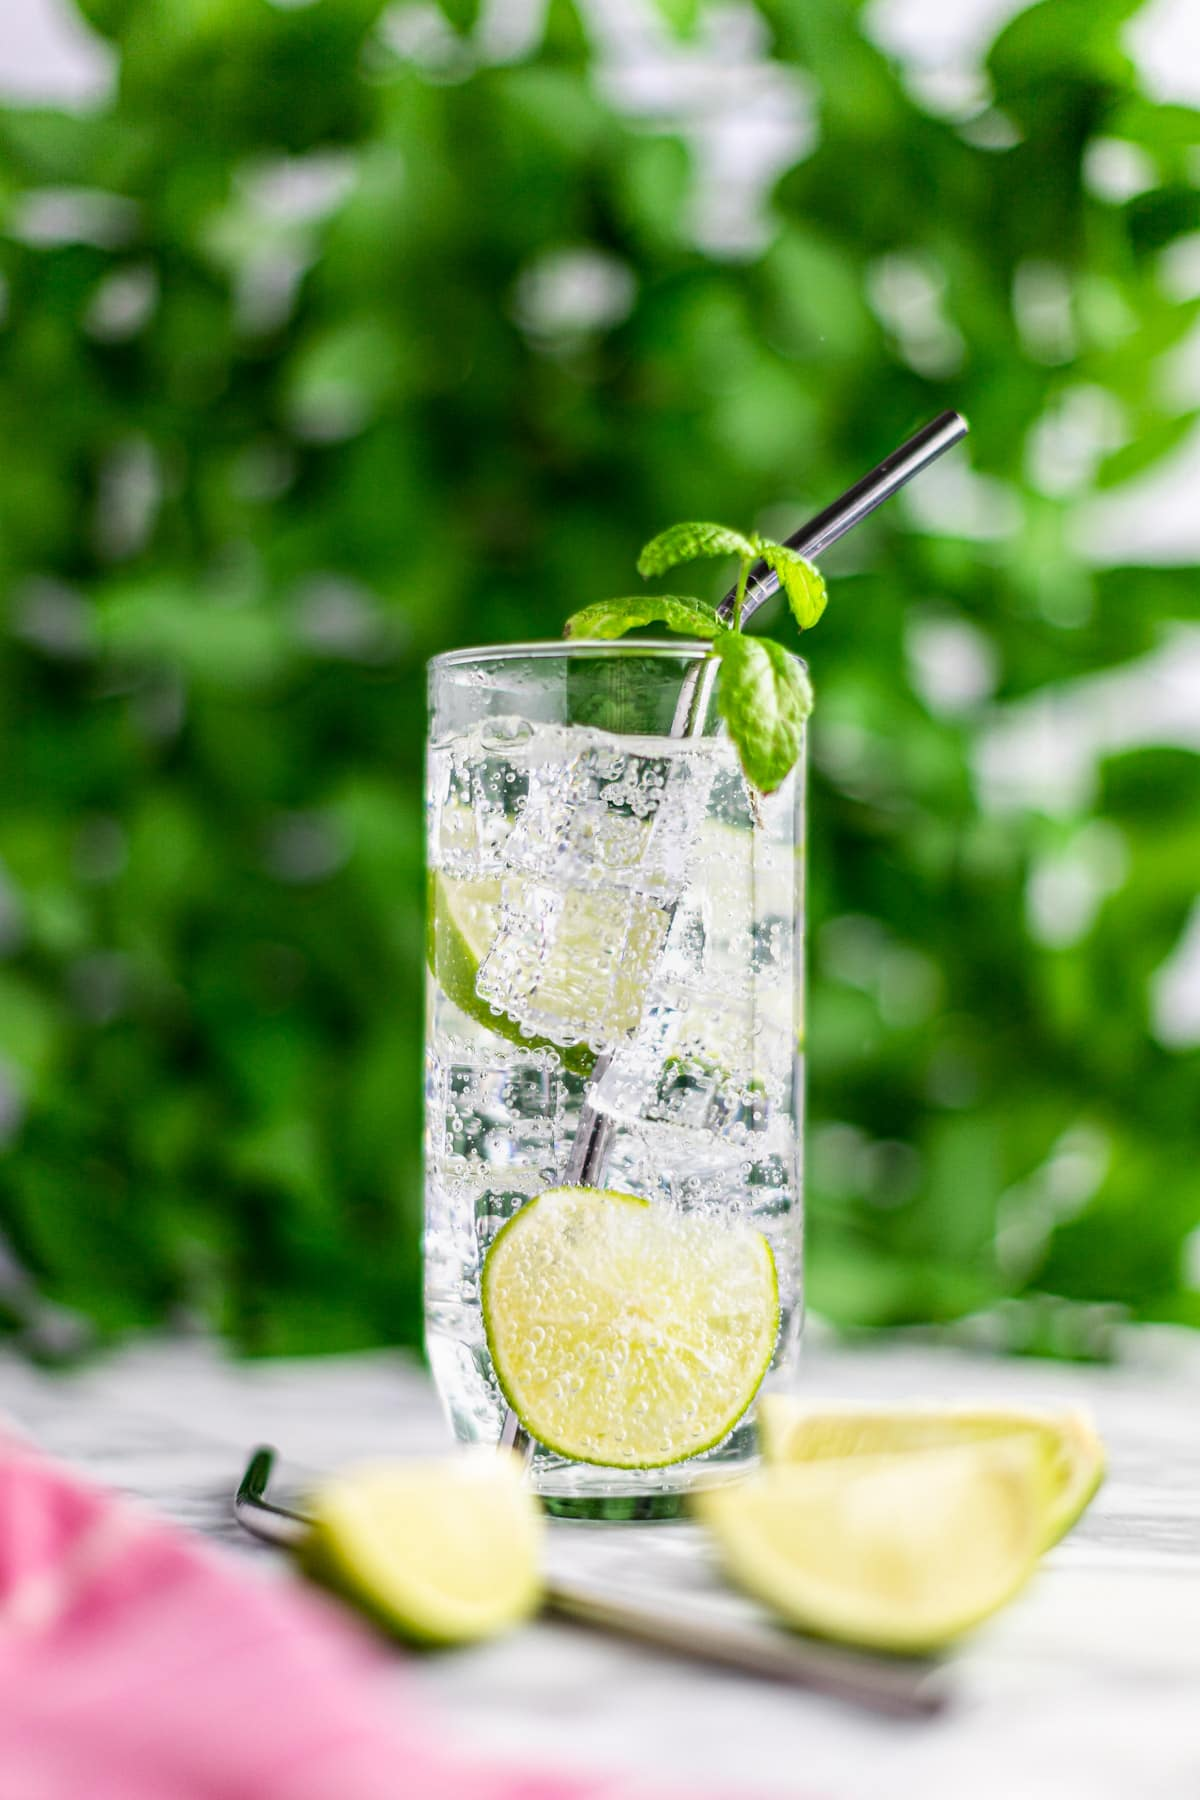 A mojito, garnished with lime and mint, and a metal straw in the glass, in front of a wall of green leaves.